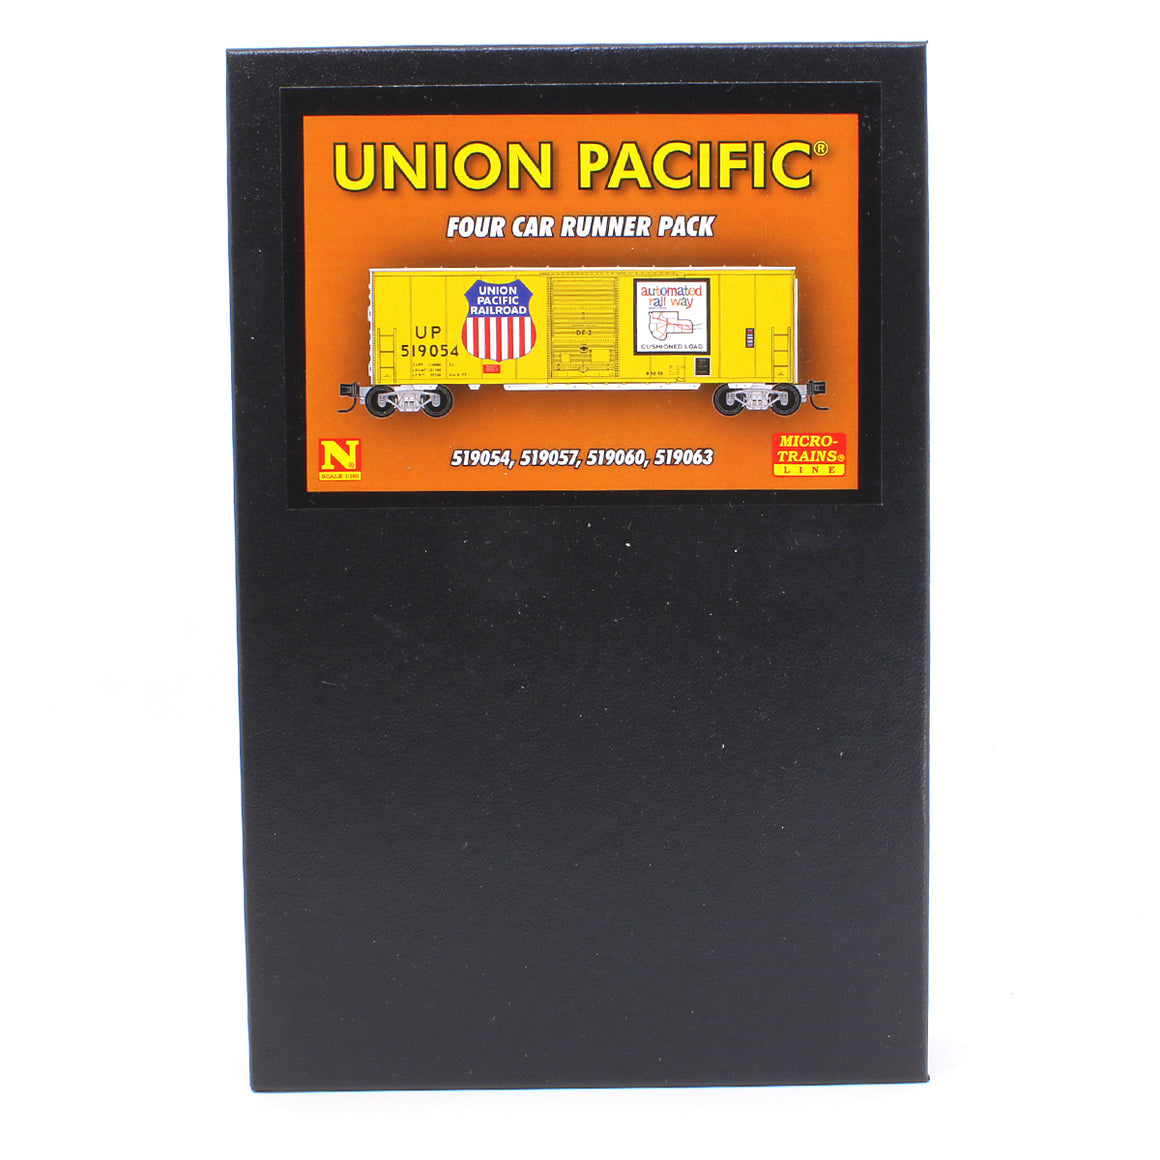 N Scale: 40' Standard Boxcar - Union Pacific - 4 Pack